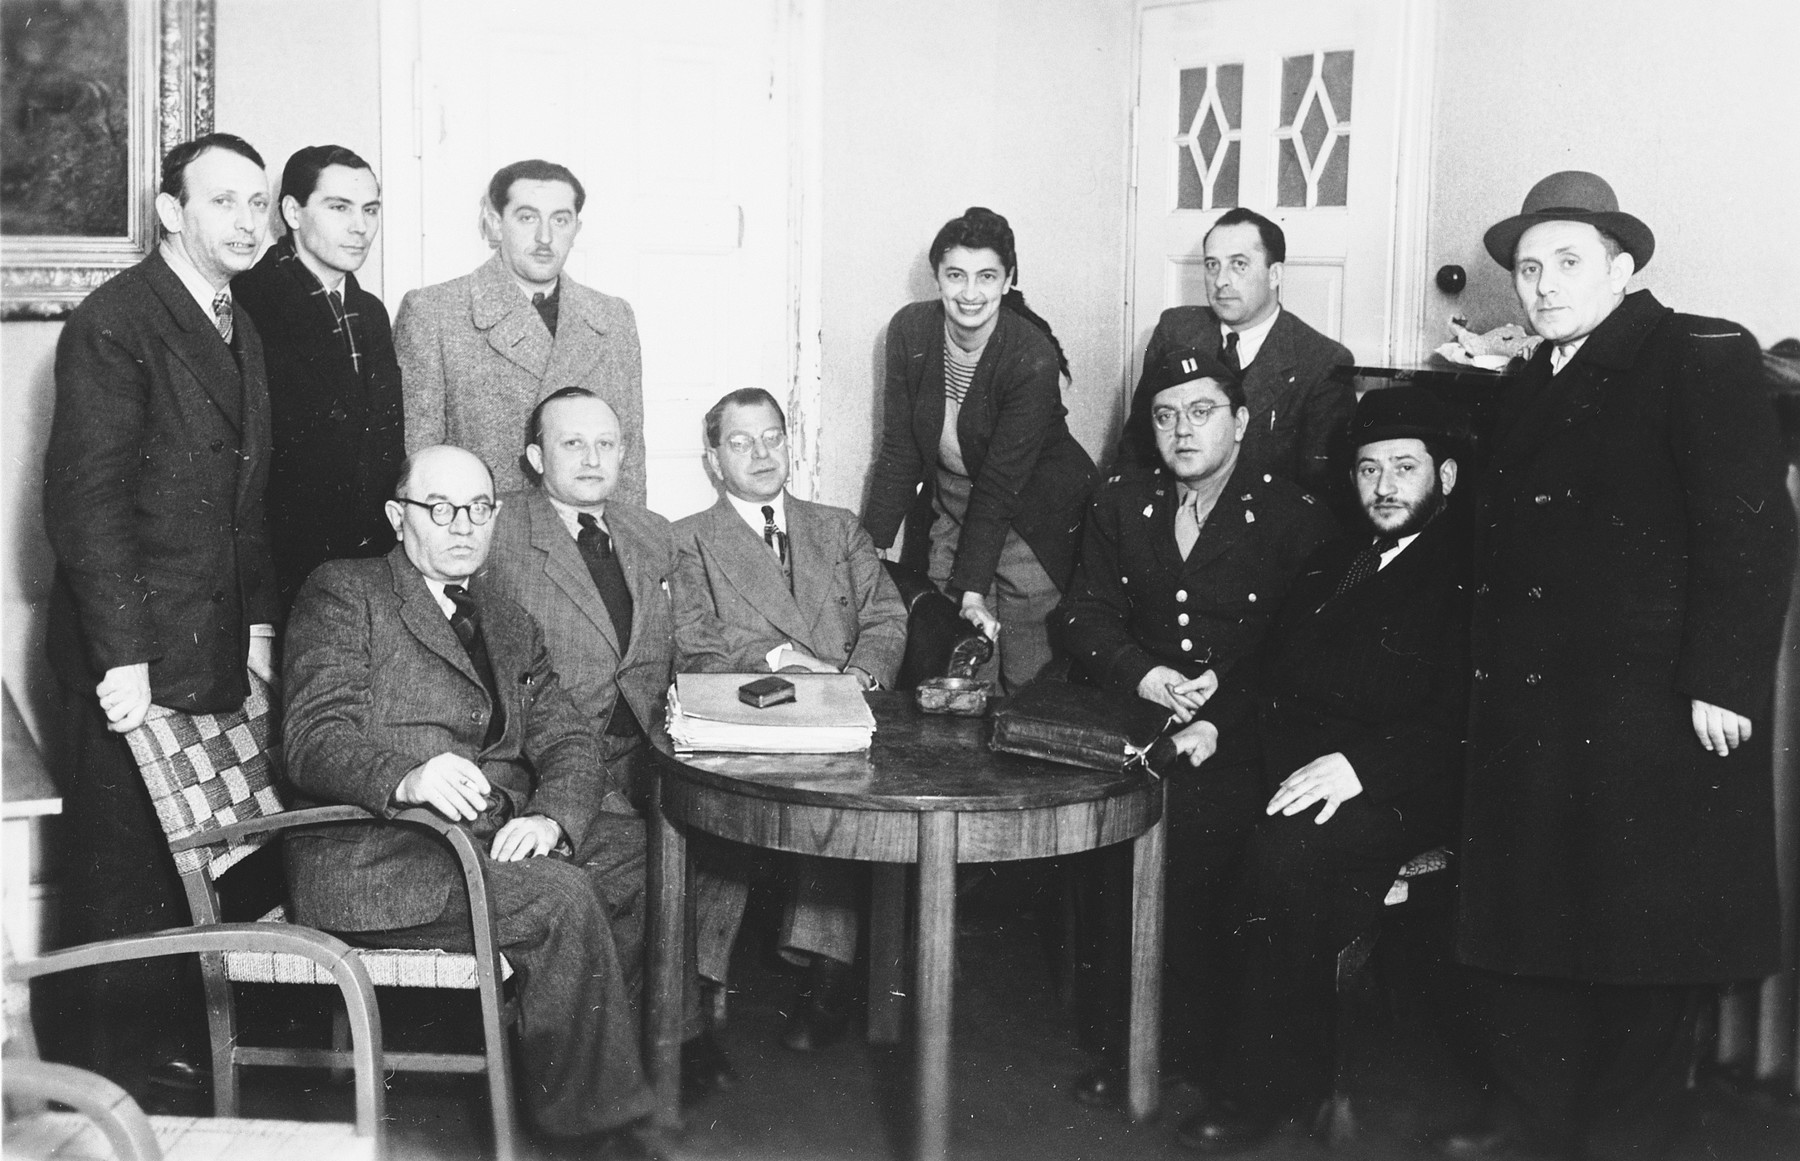 Group portrait of members of a Jewish committee in the Stuttgart displaced persons camp.